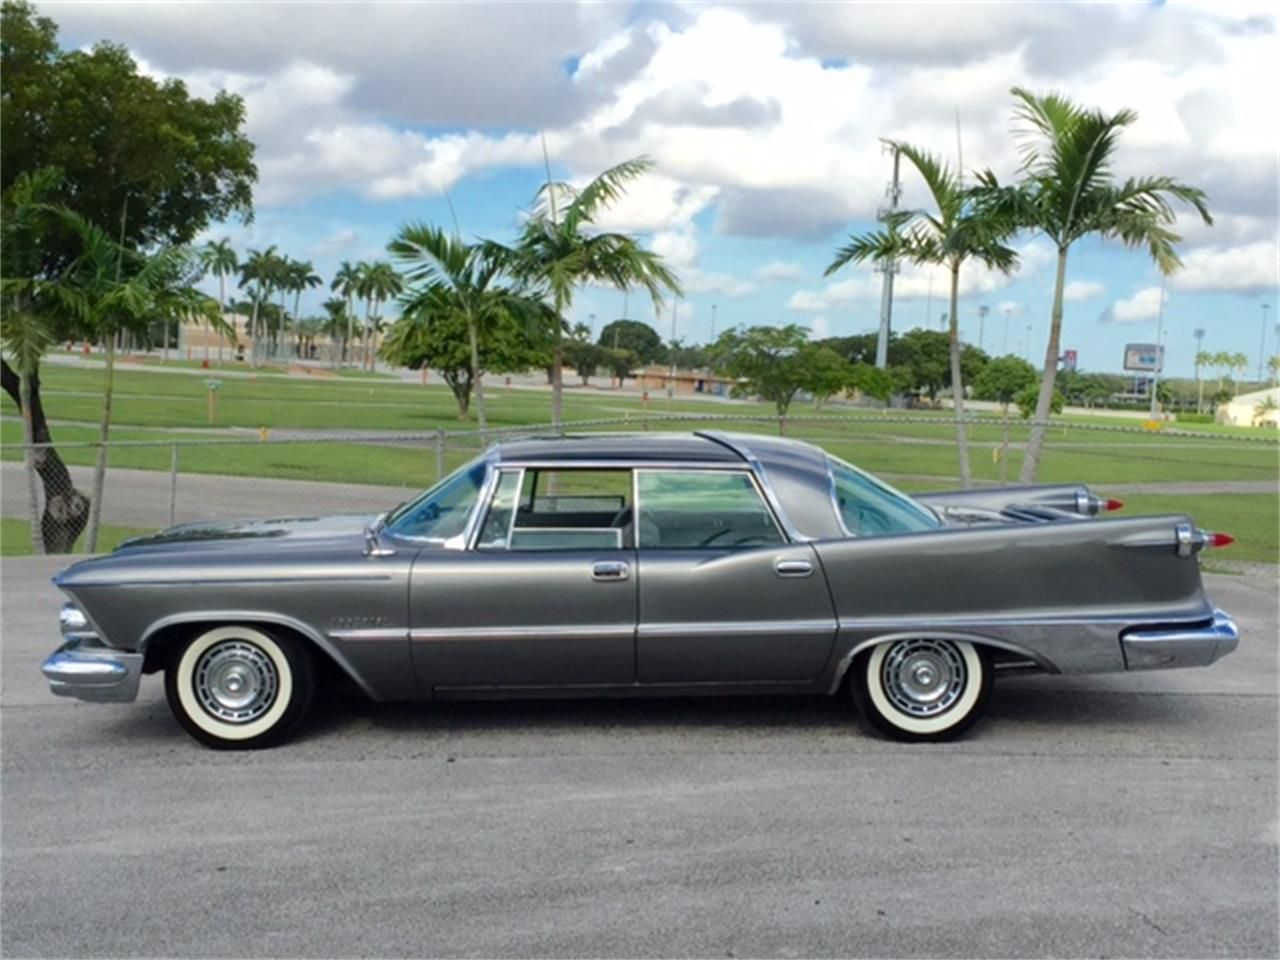 1959 Imperial Crown 4 Door Southampton Limited Edition Chrysler